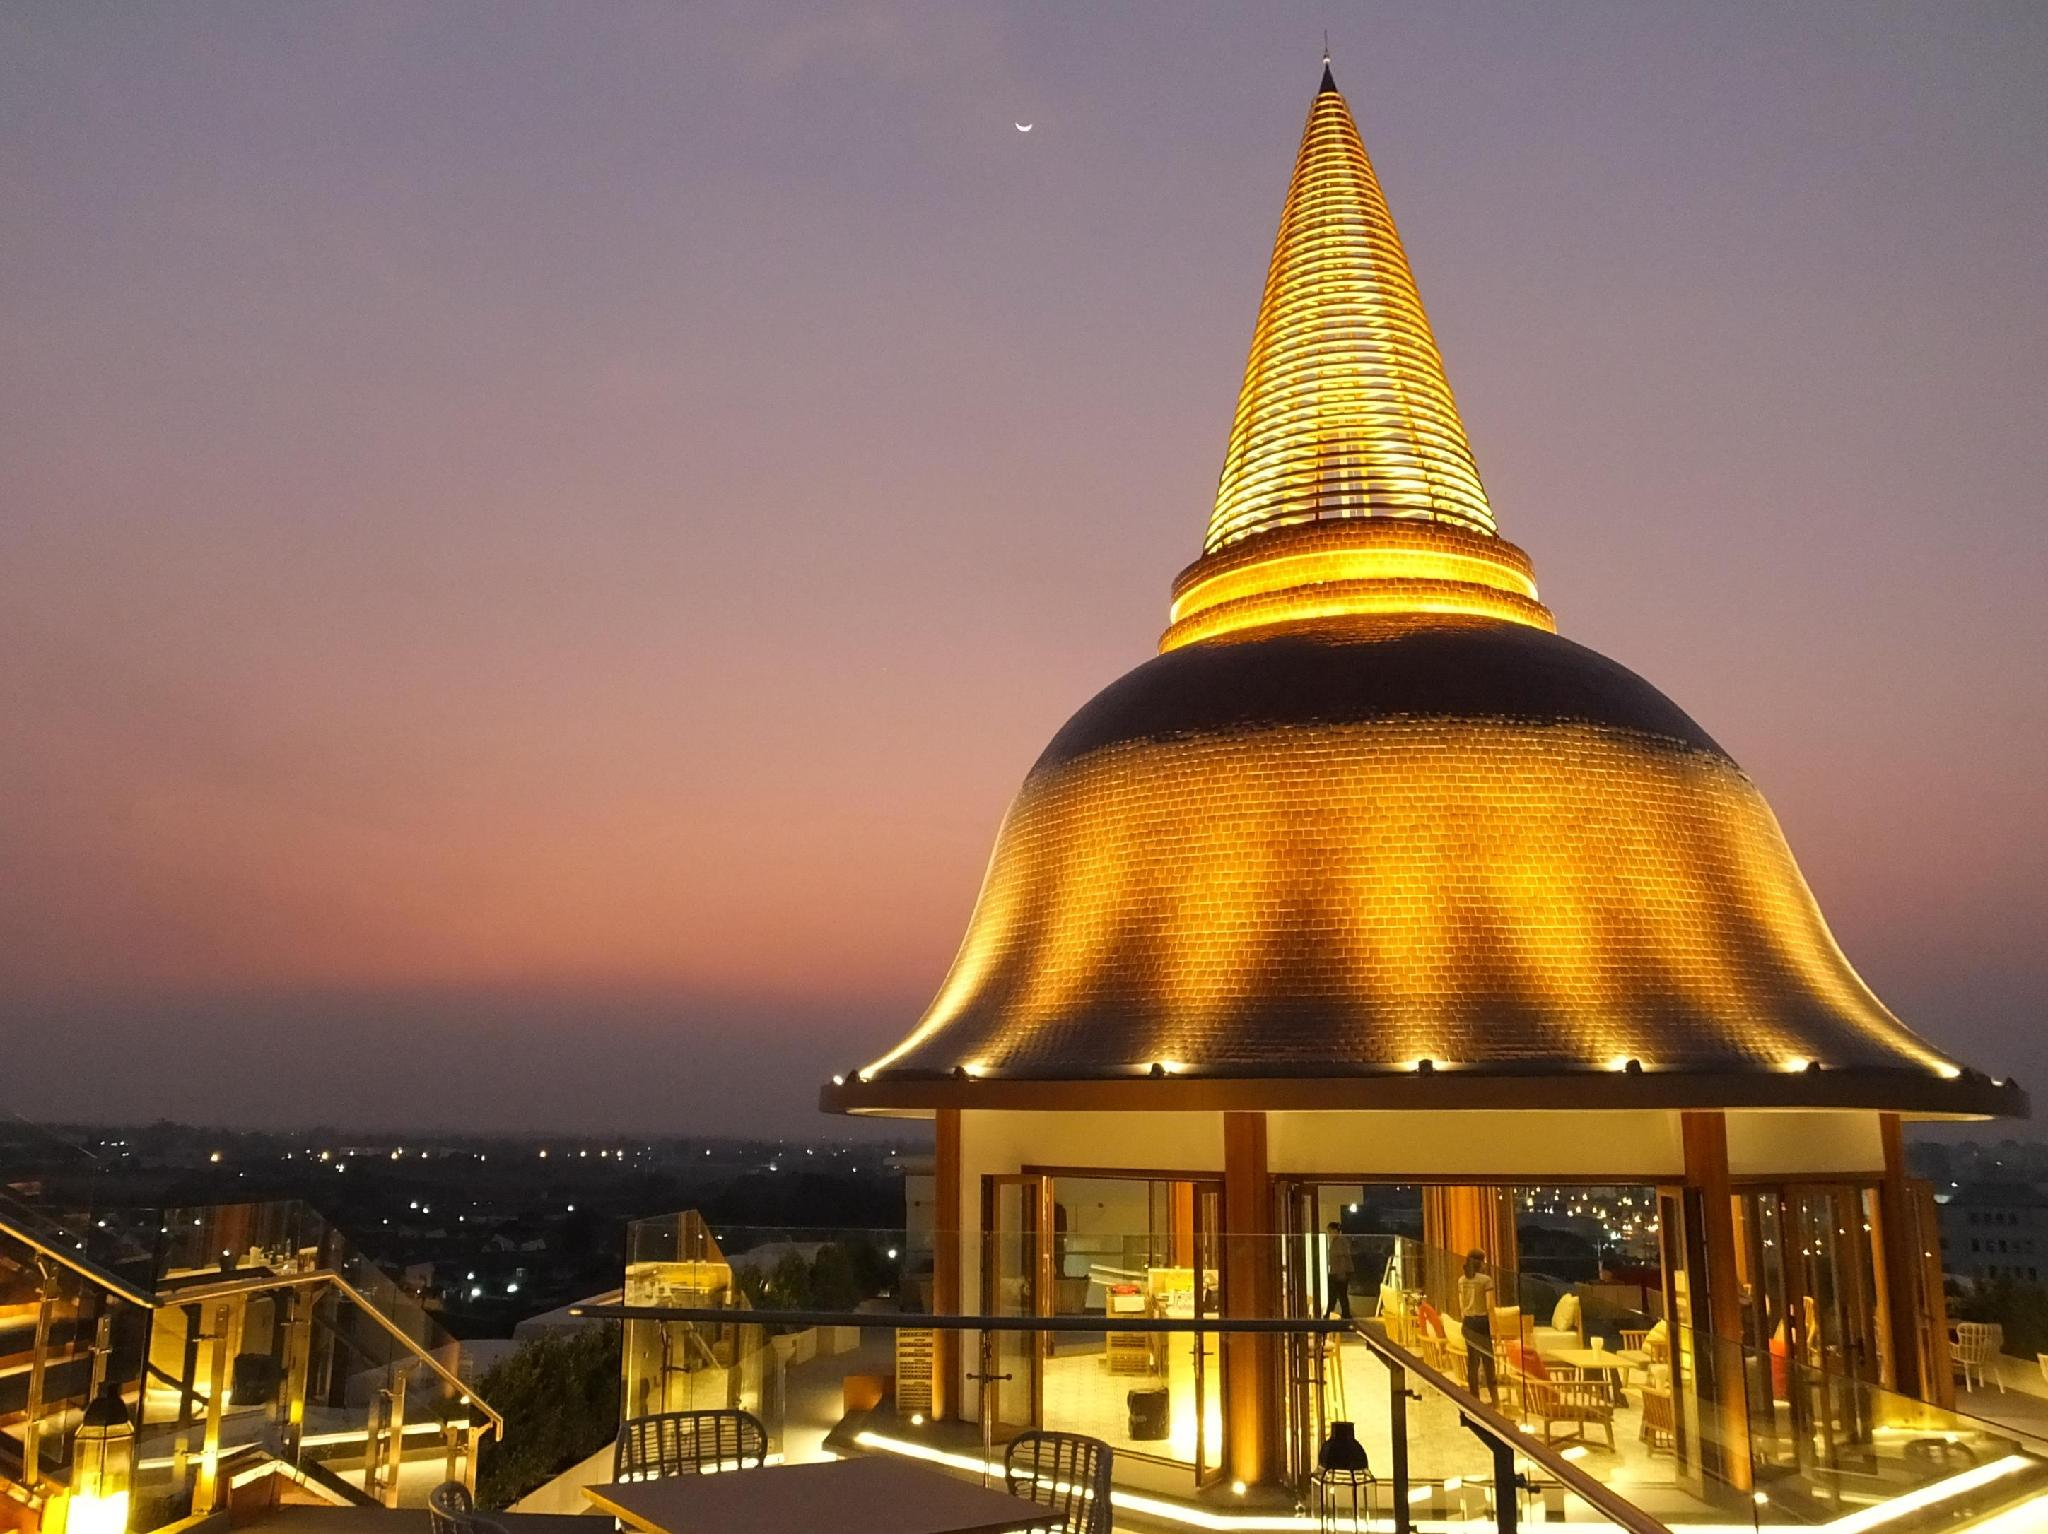 Mida Grande Hotel Dhavaravati Nakhon Pathom - Hotels and Accommodation in Thailand, Asia